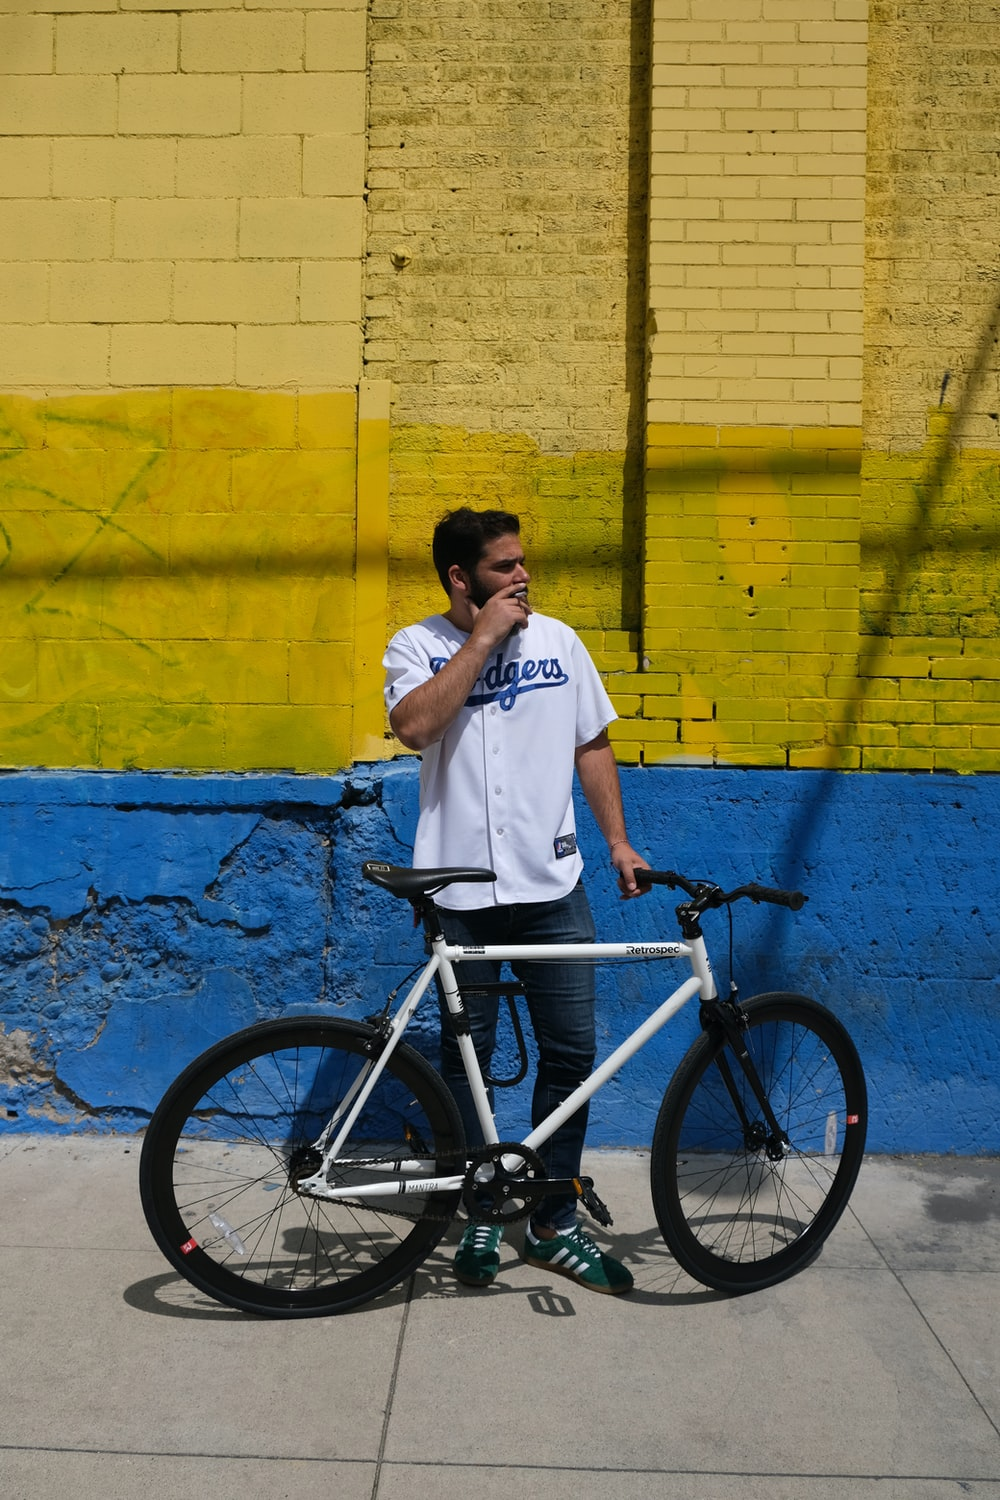 man in white shirt and black pants riding on black bicycle